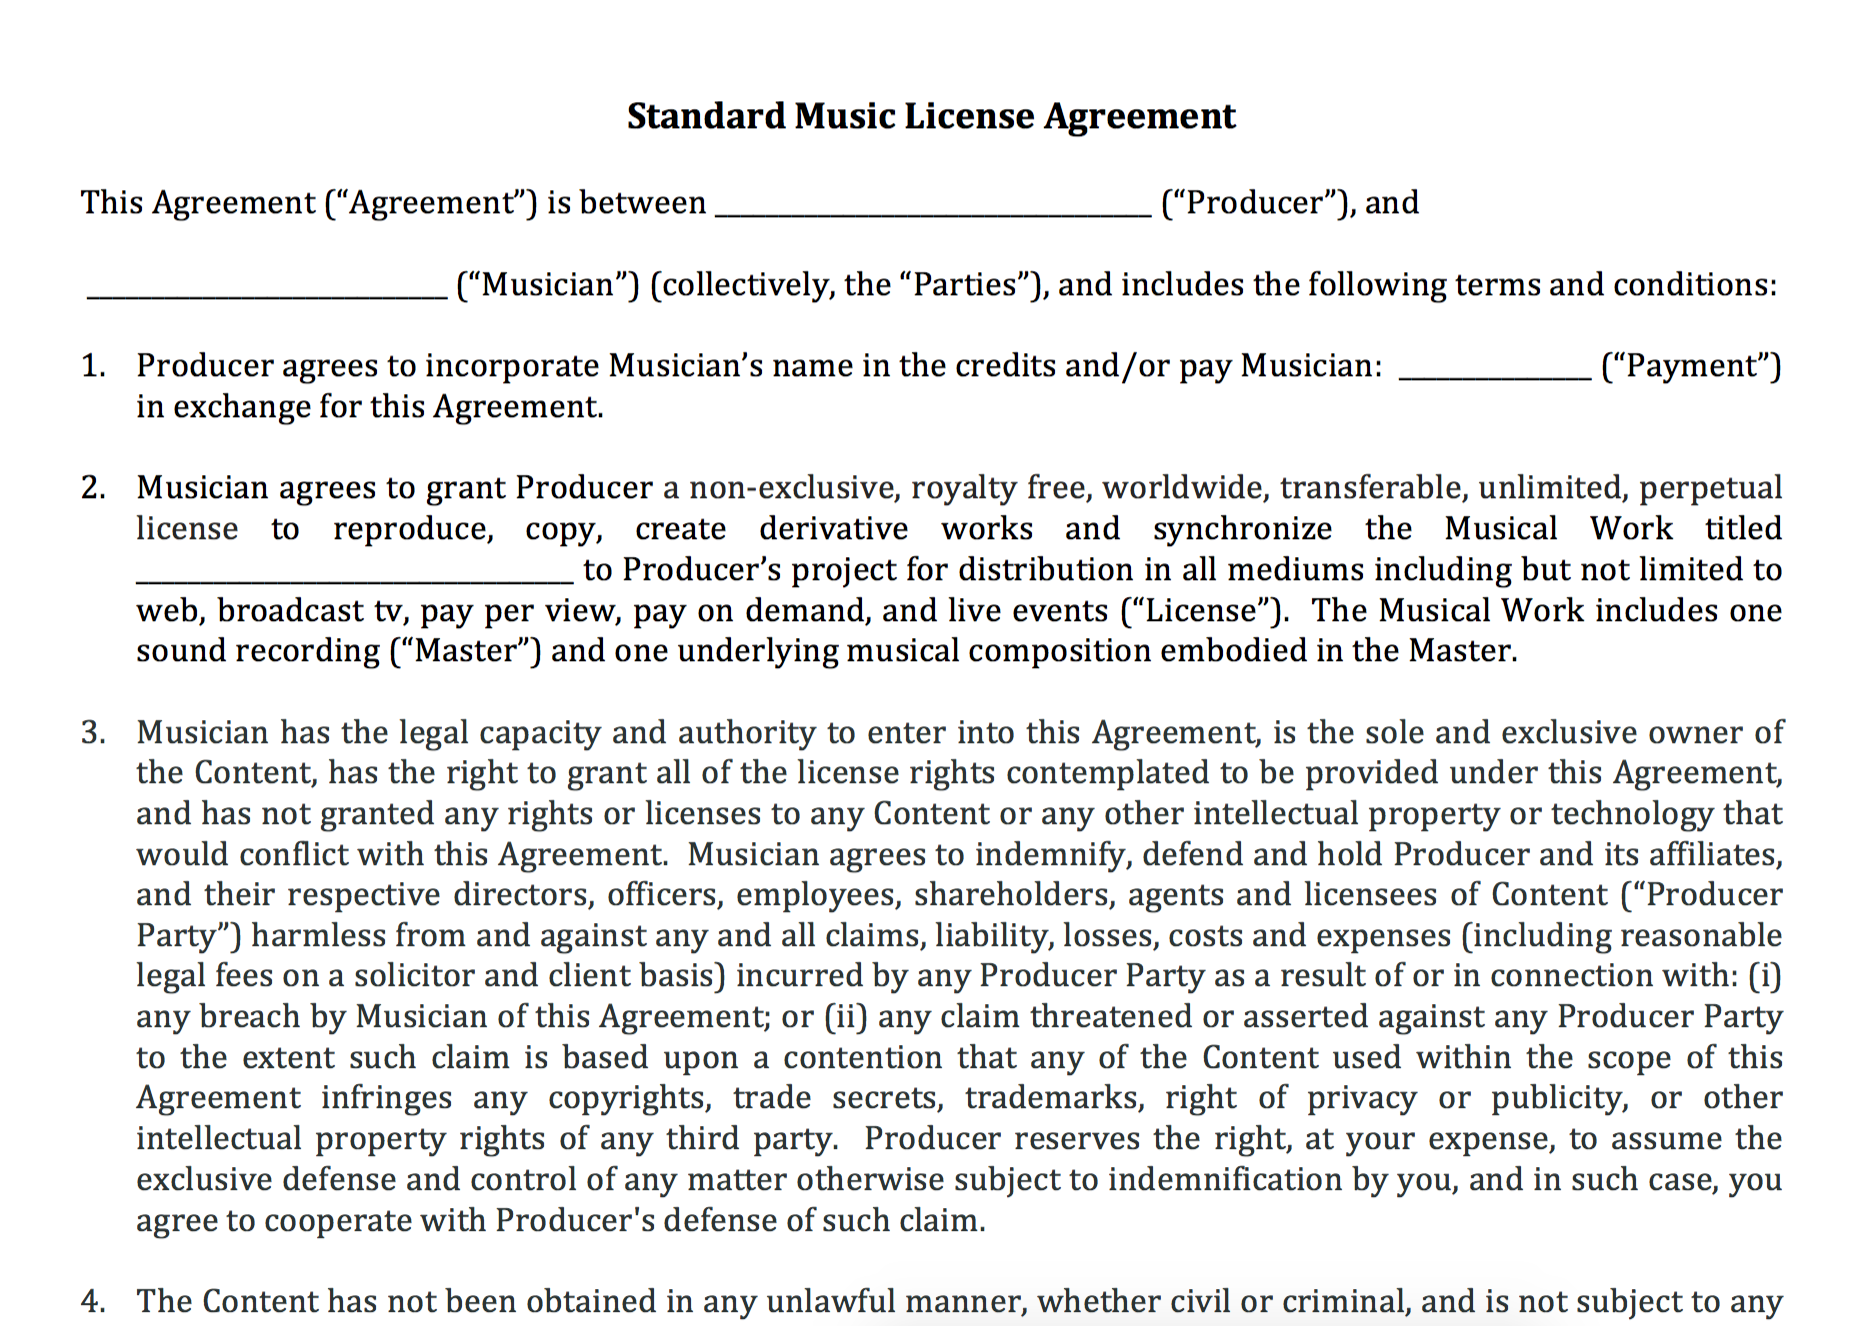 Standard music license agreement nimia for Music production contract template